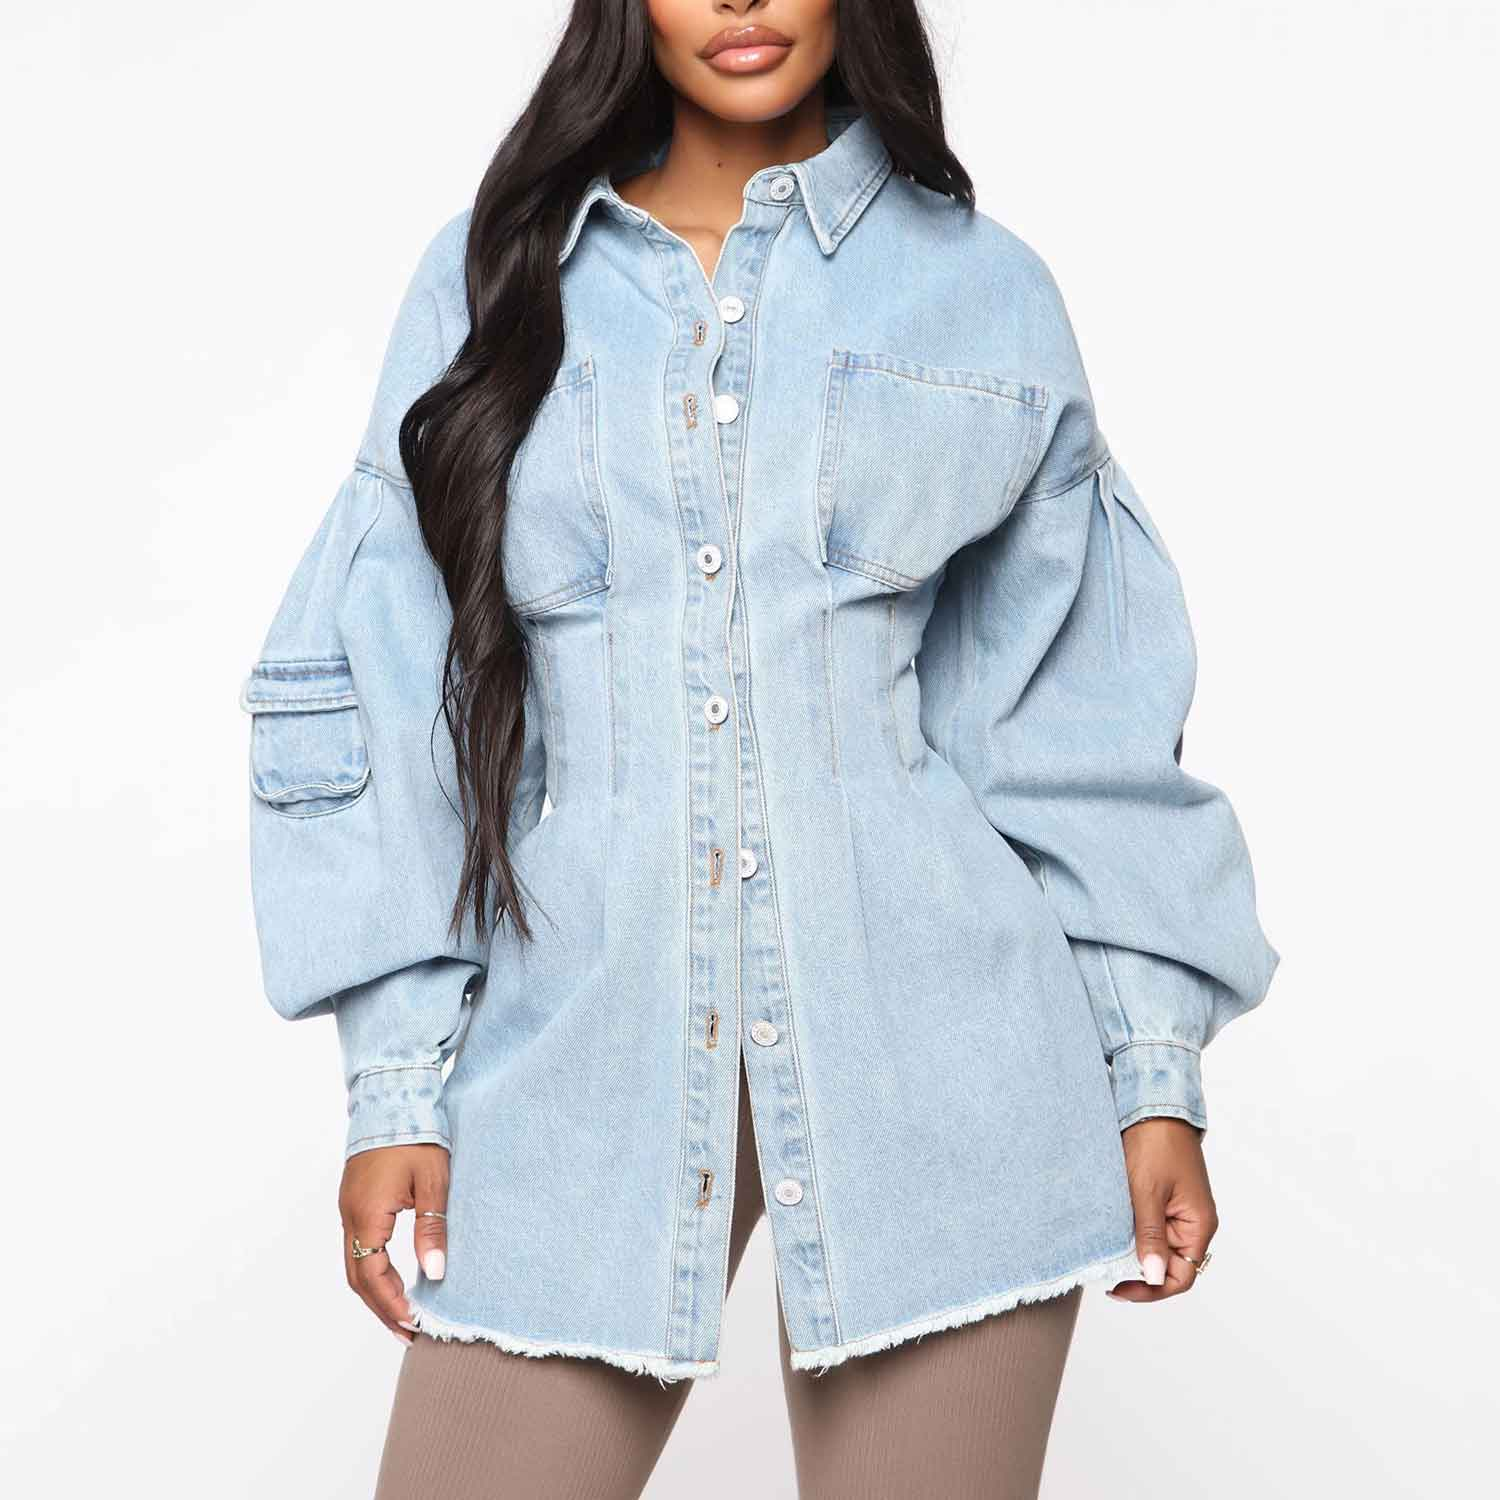 Custom Women Fashion Long Puff Sleeve Oversized Button Down Jean Denim Jacket